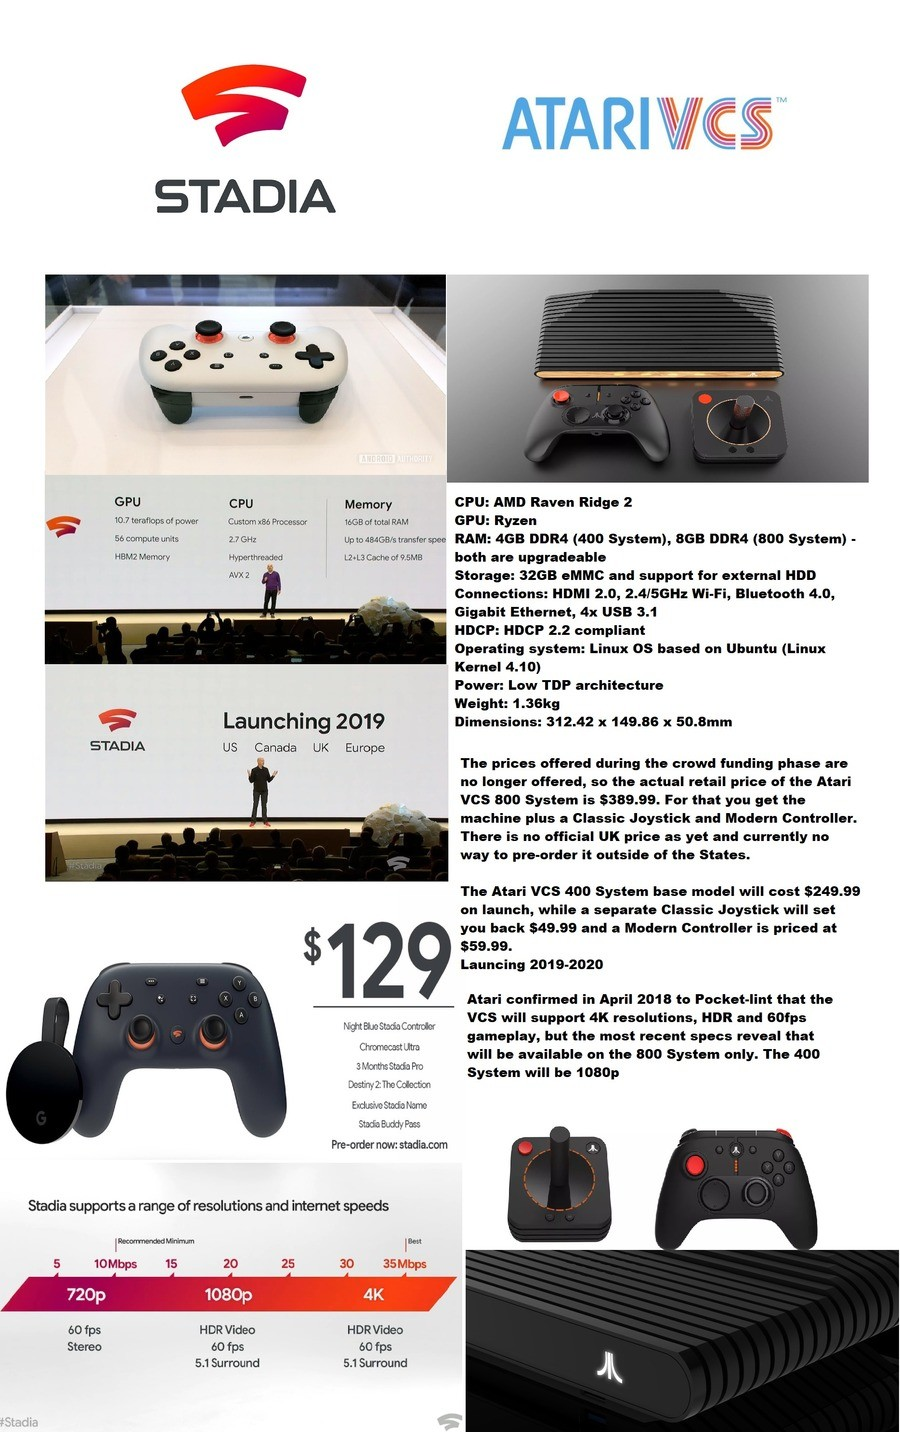 Atari VCS vs Google Stadia. So which would you choose? Stadia or Atari Googles answer to Xbox Some thing Atari did Vote! (View results) .. I'd get a Switch instead.